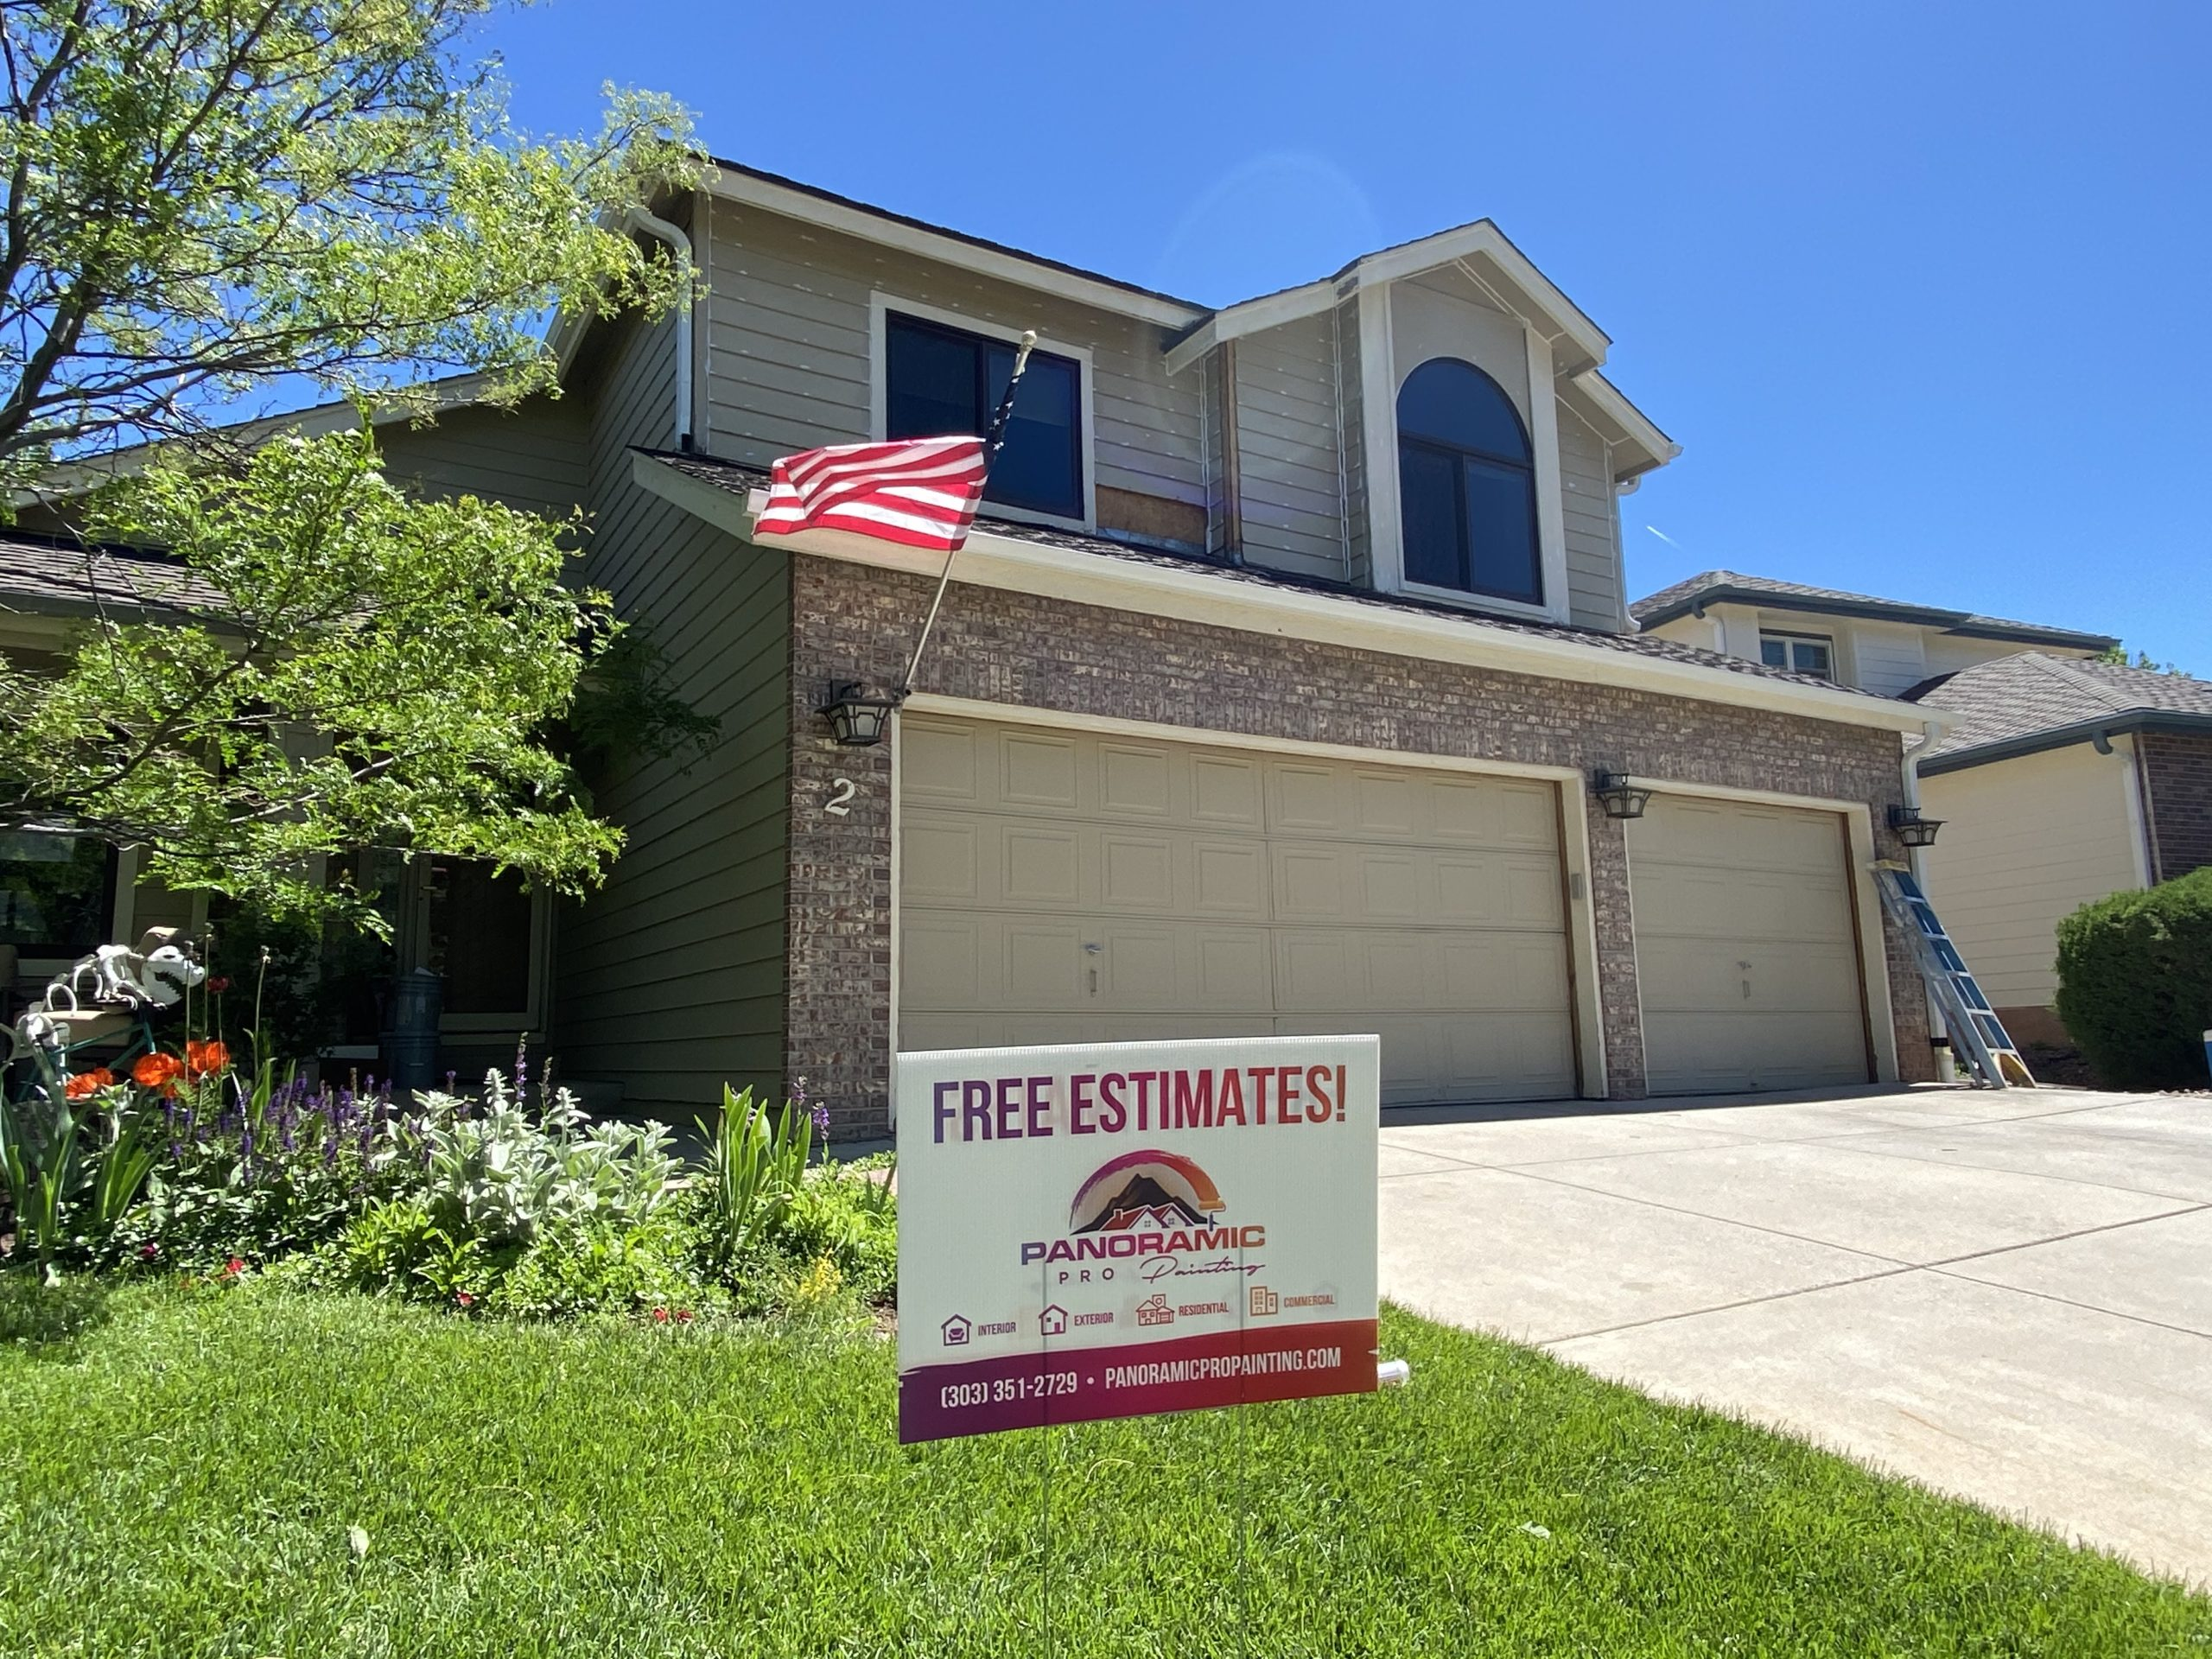 Commercial Custom Lawn Signs in Denver, CO